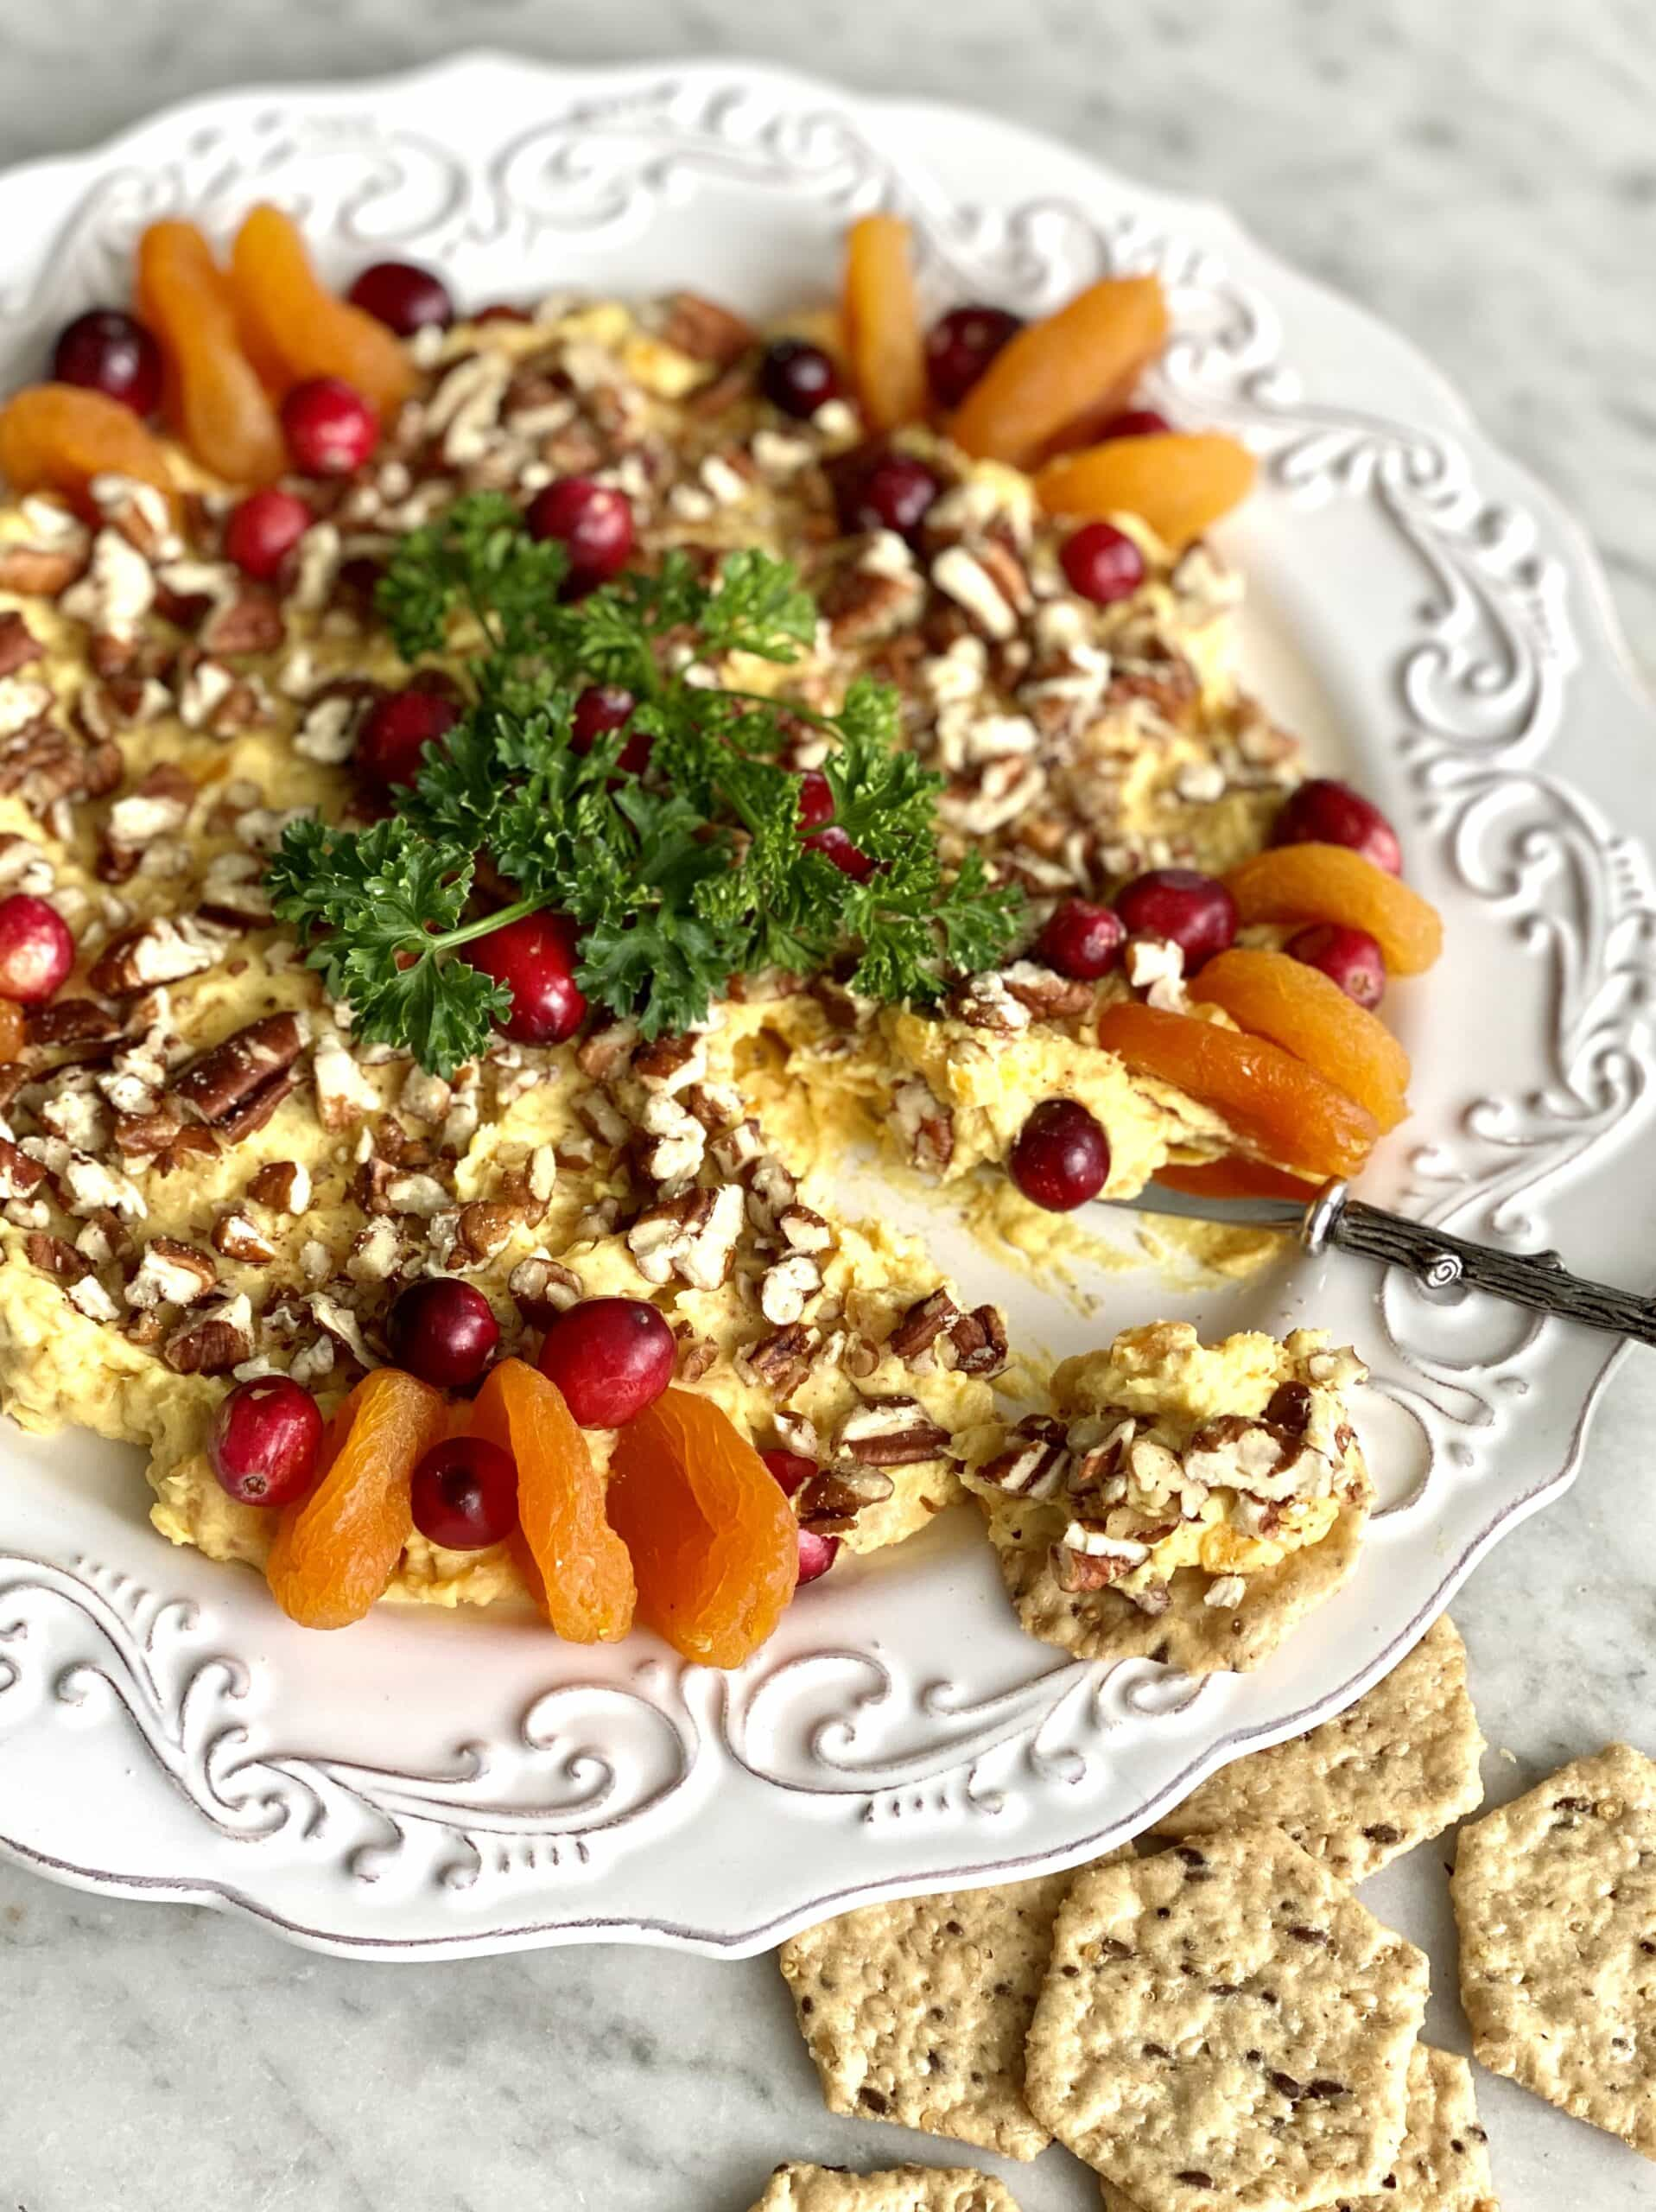 cheese spread on a white plate with crackers, apricots and cranberry garnish